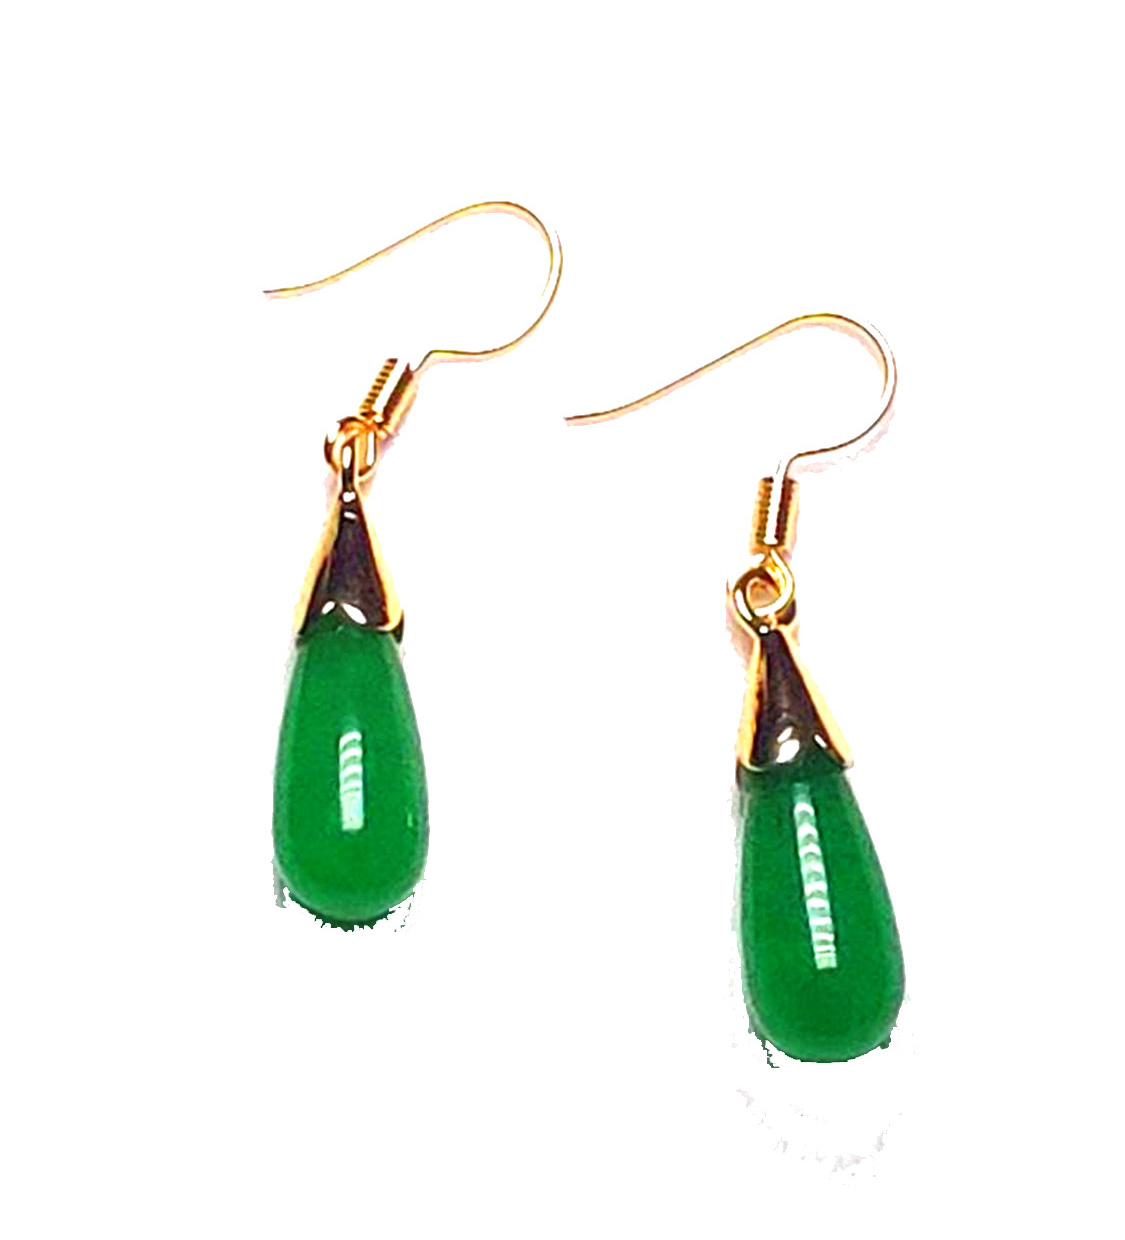 Koraba 14K Gold Plated Natural Green Jadeite Jade Drop Women Earrings Gemstone Earrings  Yellow Stone EarringsKoraba 14K Gold Plated Natural Green Jadeite Jade Drop Women Earrings Gemstone Earrings  Yellow Stone Earrings